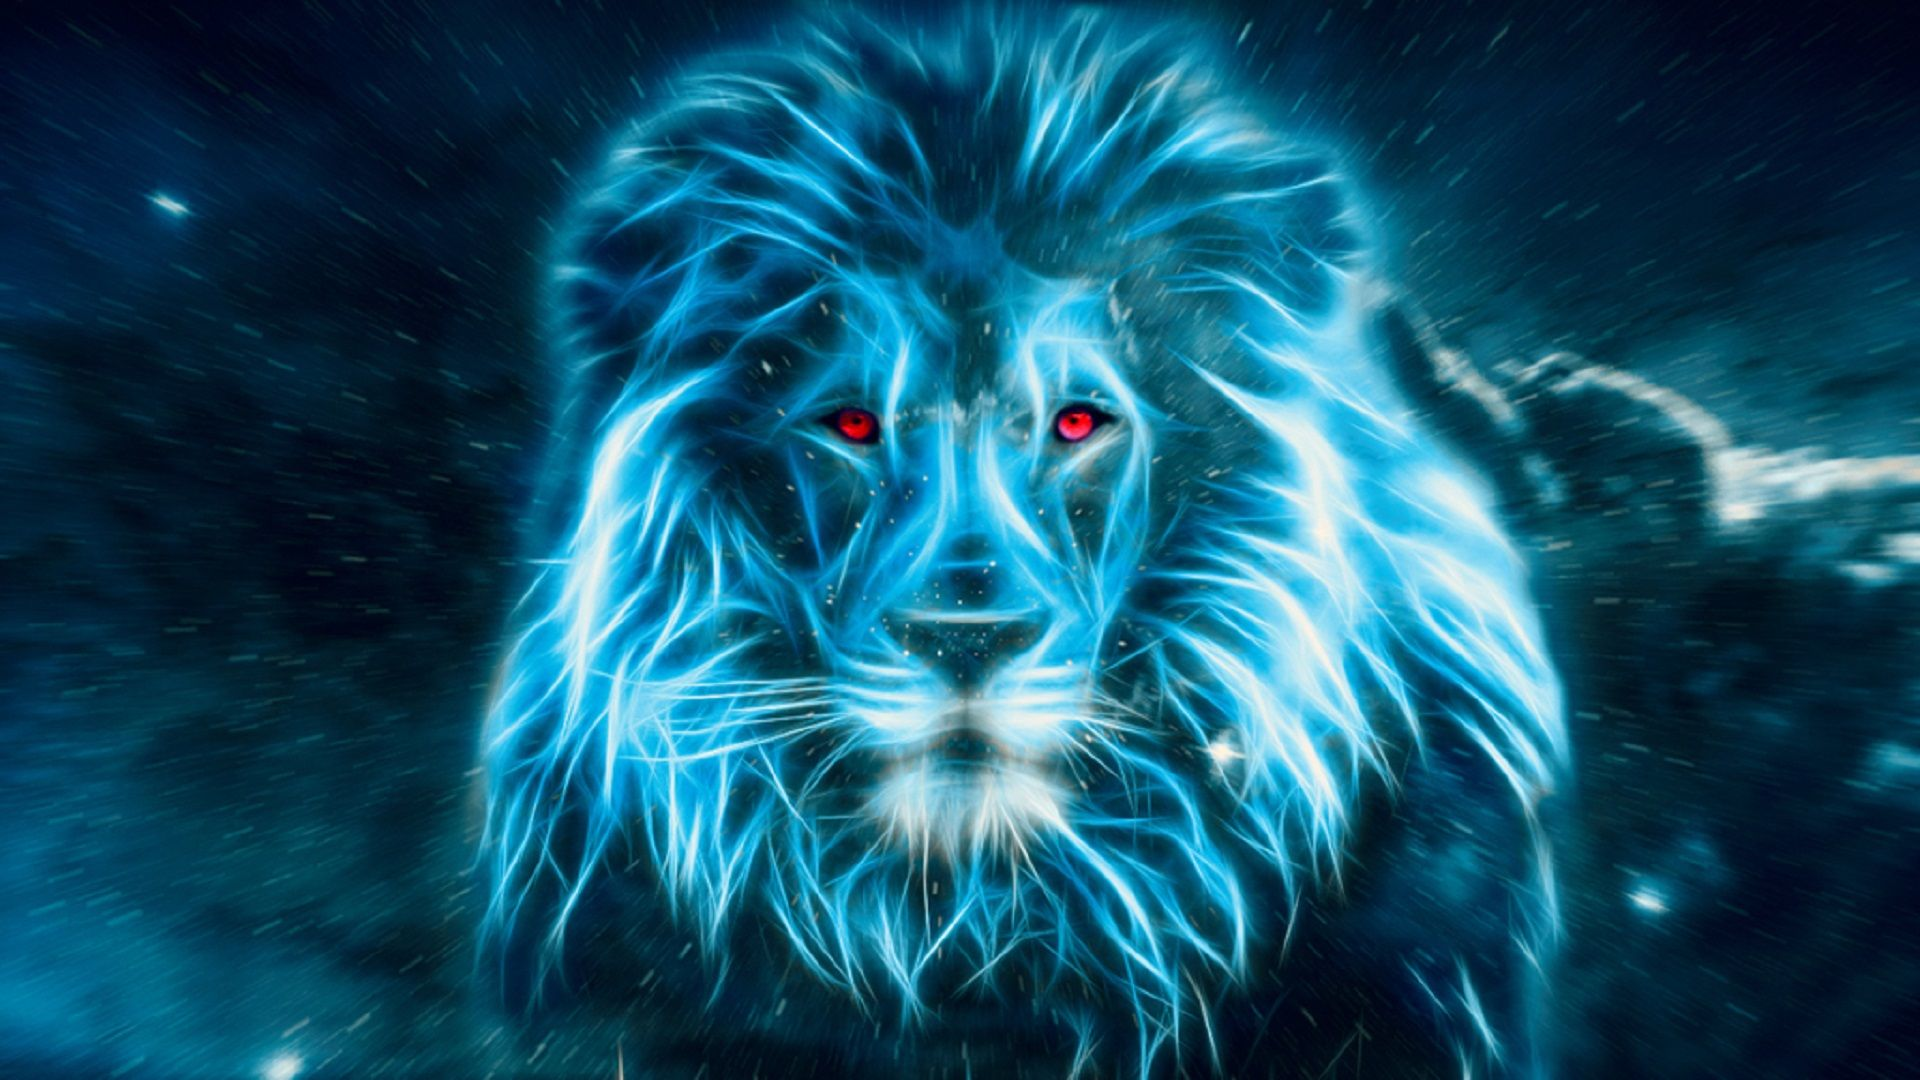 Blue Cool Lion Wallpapers Top Free Blue Cool Lion Backgrounds Wallpaperaccess